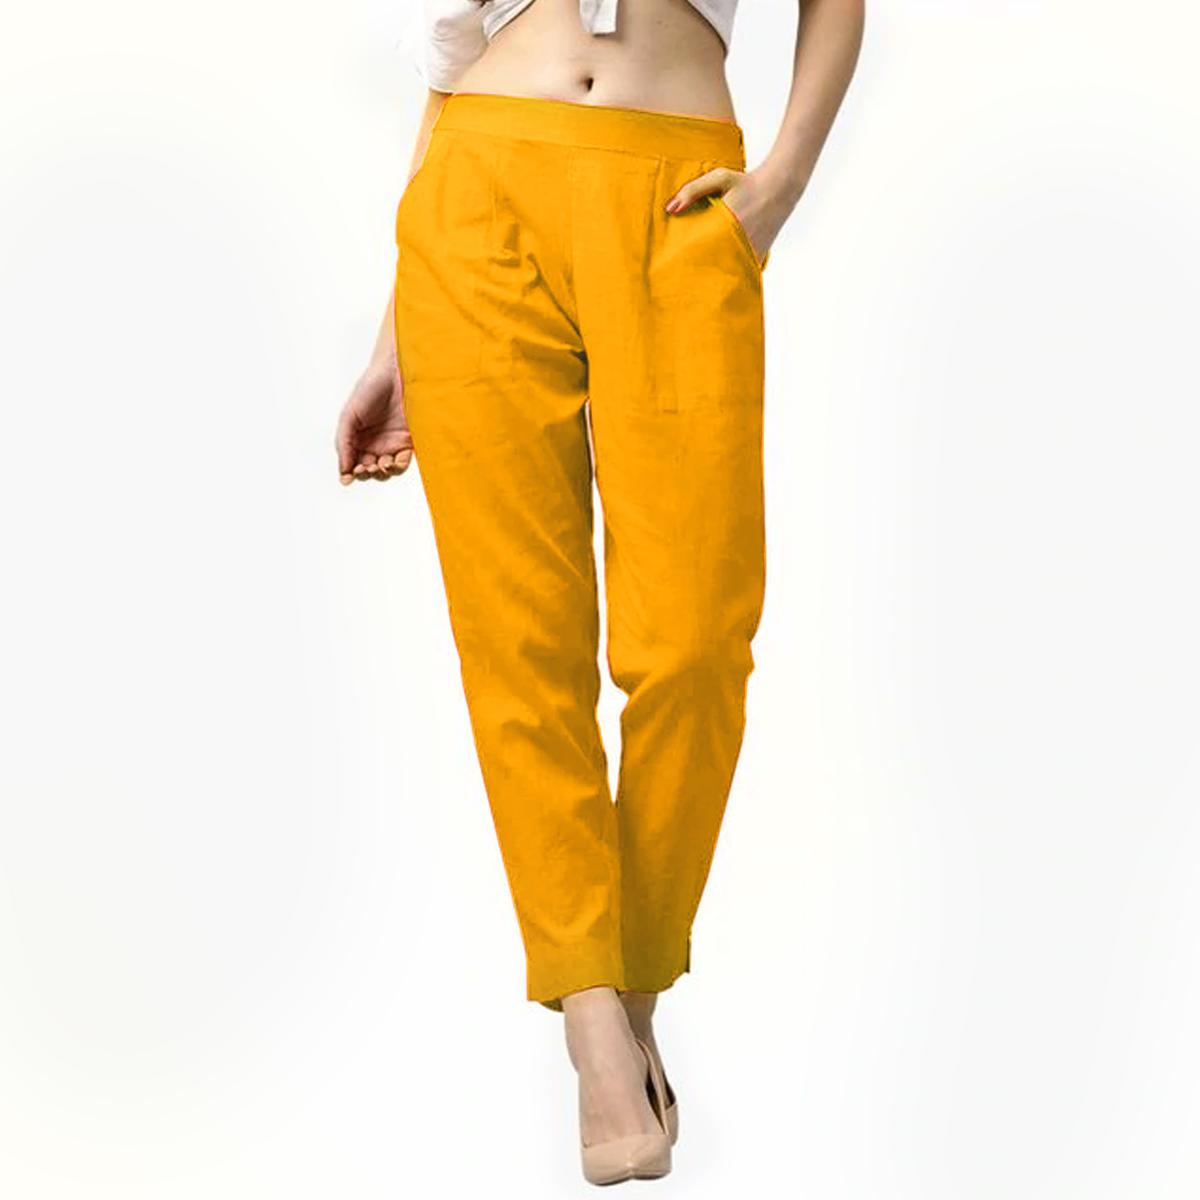 Pleasance Mustard Yellow Colored Casual Wear Cotton Pant